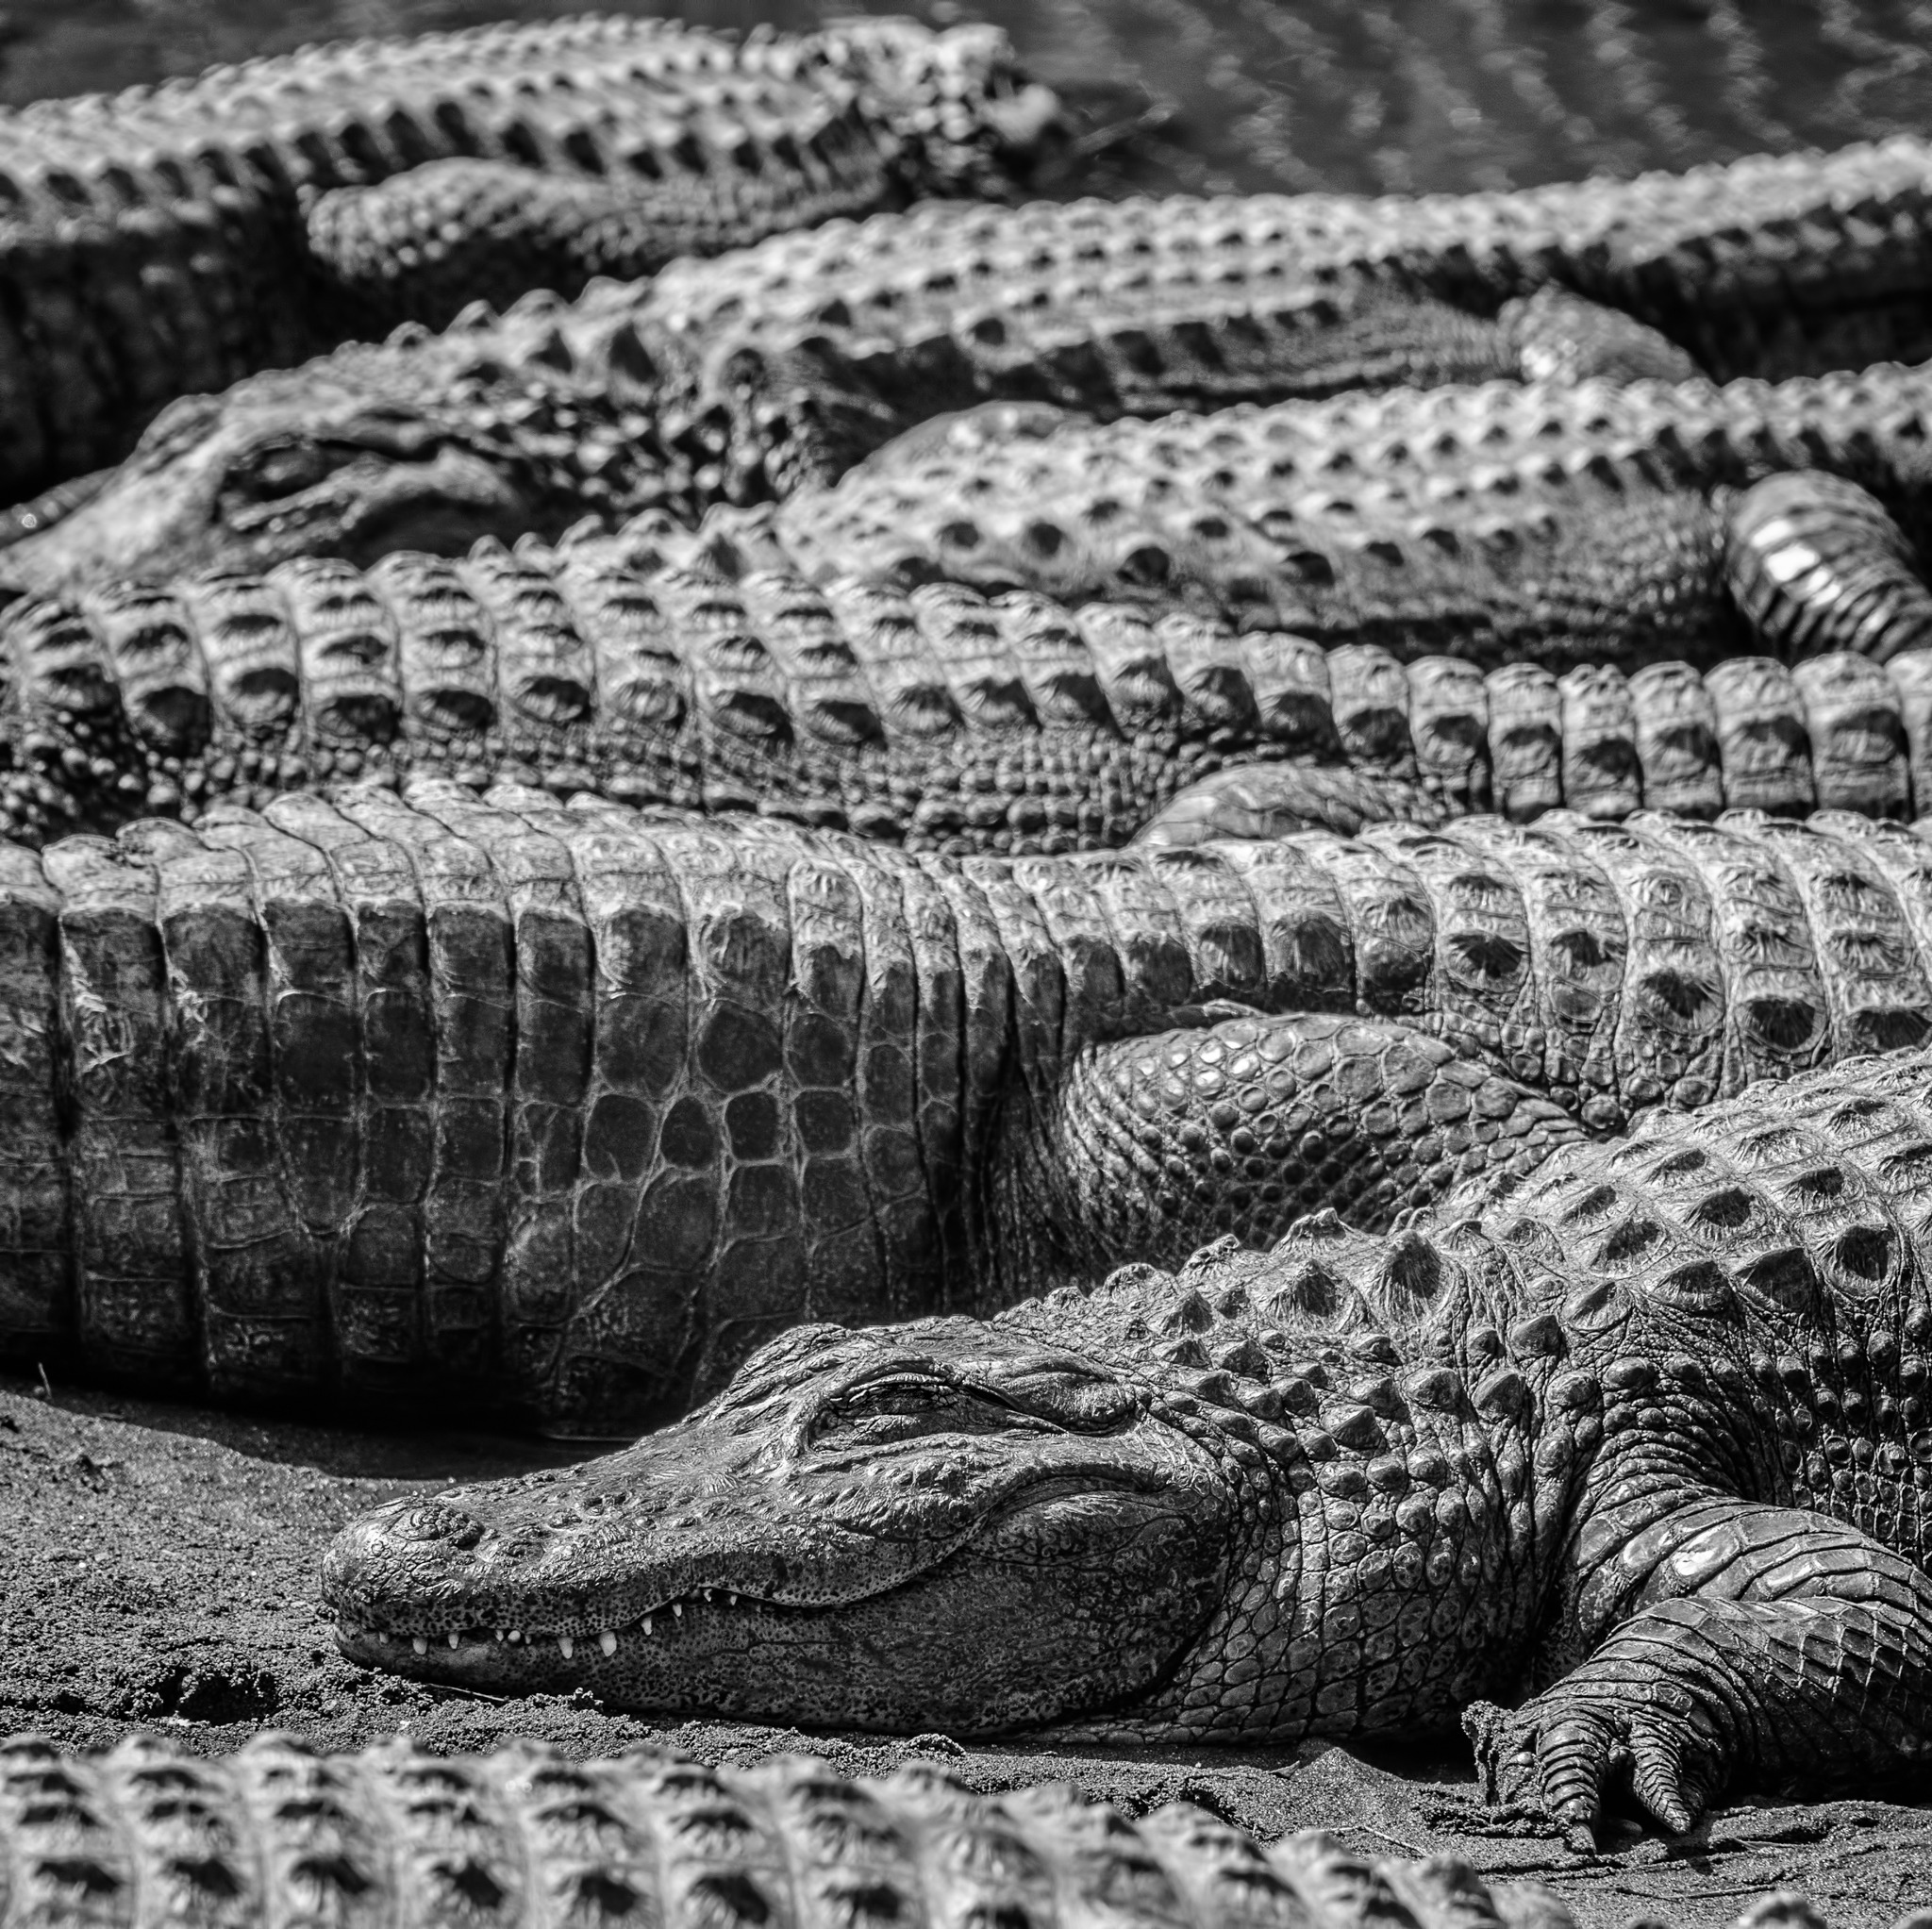 These young alligators are living in the same area within Colorado Gators near Hooper, Colorado. When they become older, it will not be safe to house them in the same enclosure because male alligators are very territorial.